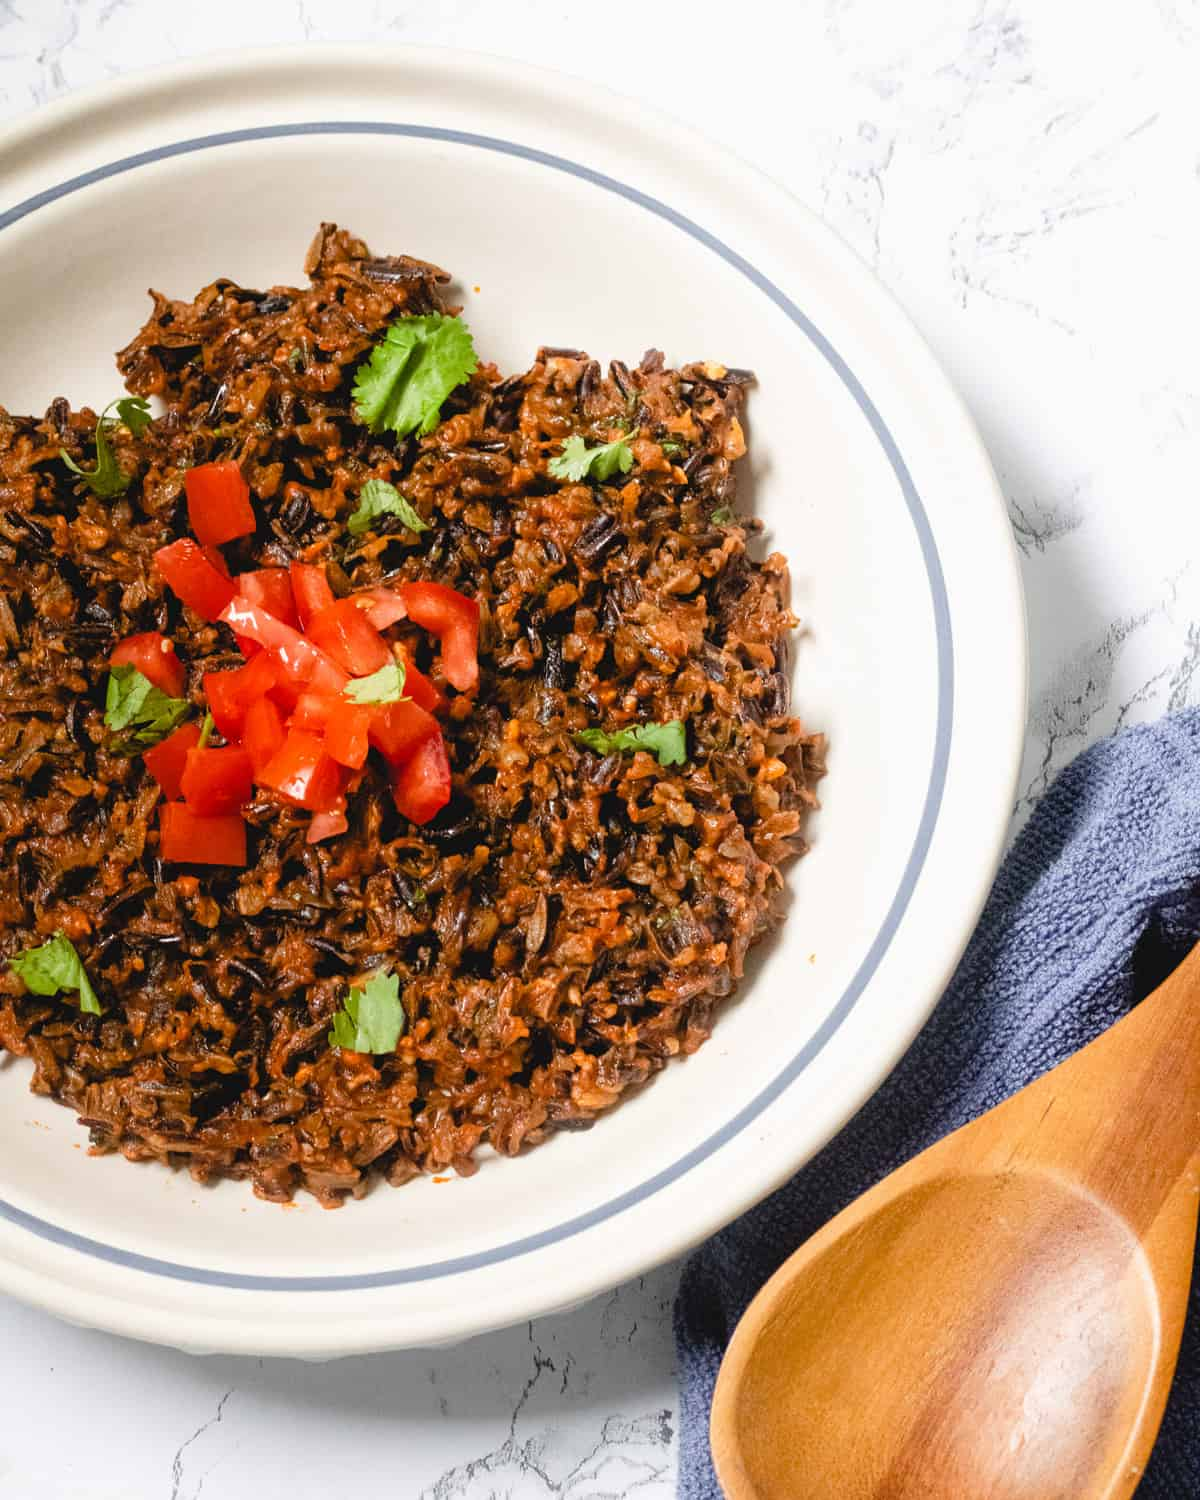 Wild rice in a white bowl. Garnished wtih tomatoes and cilantro. There is a wooden spoon on the side.